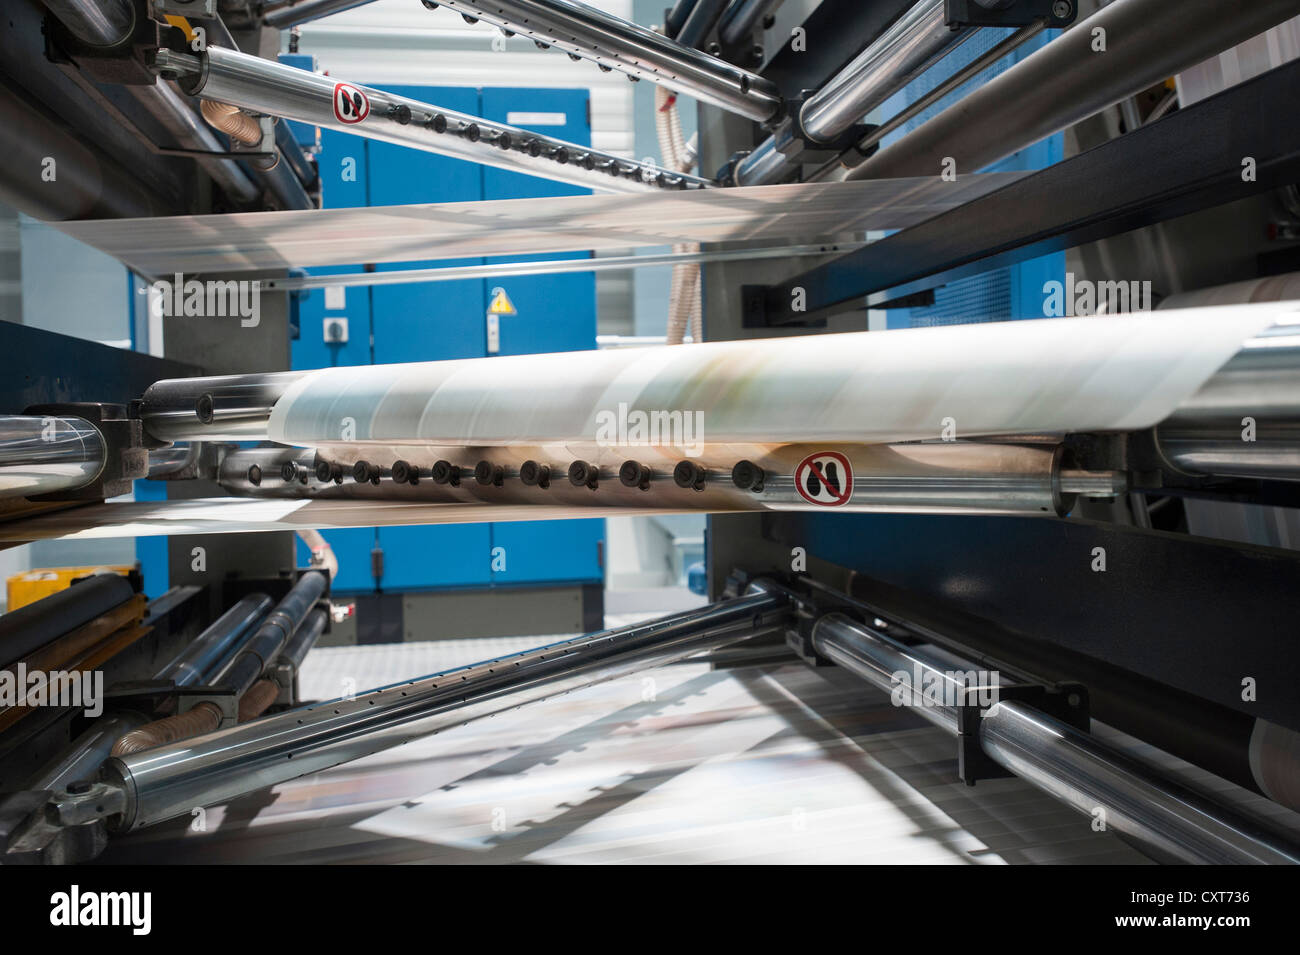 Printing press, paper turner, rotation, offset, media company 'Der neue Tag', 'Oberpfaelzischer Kurier' - Stock Image